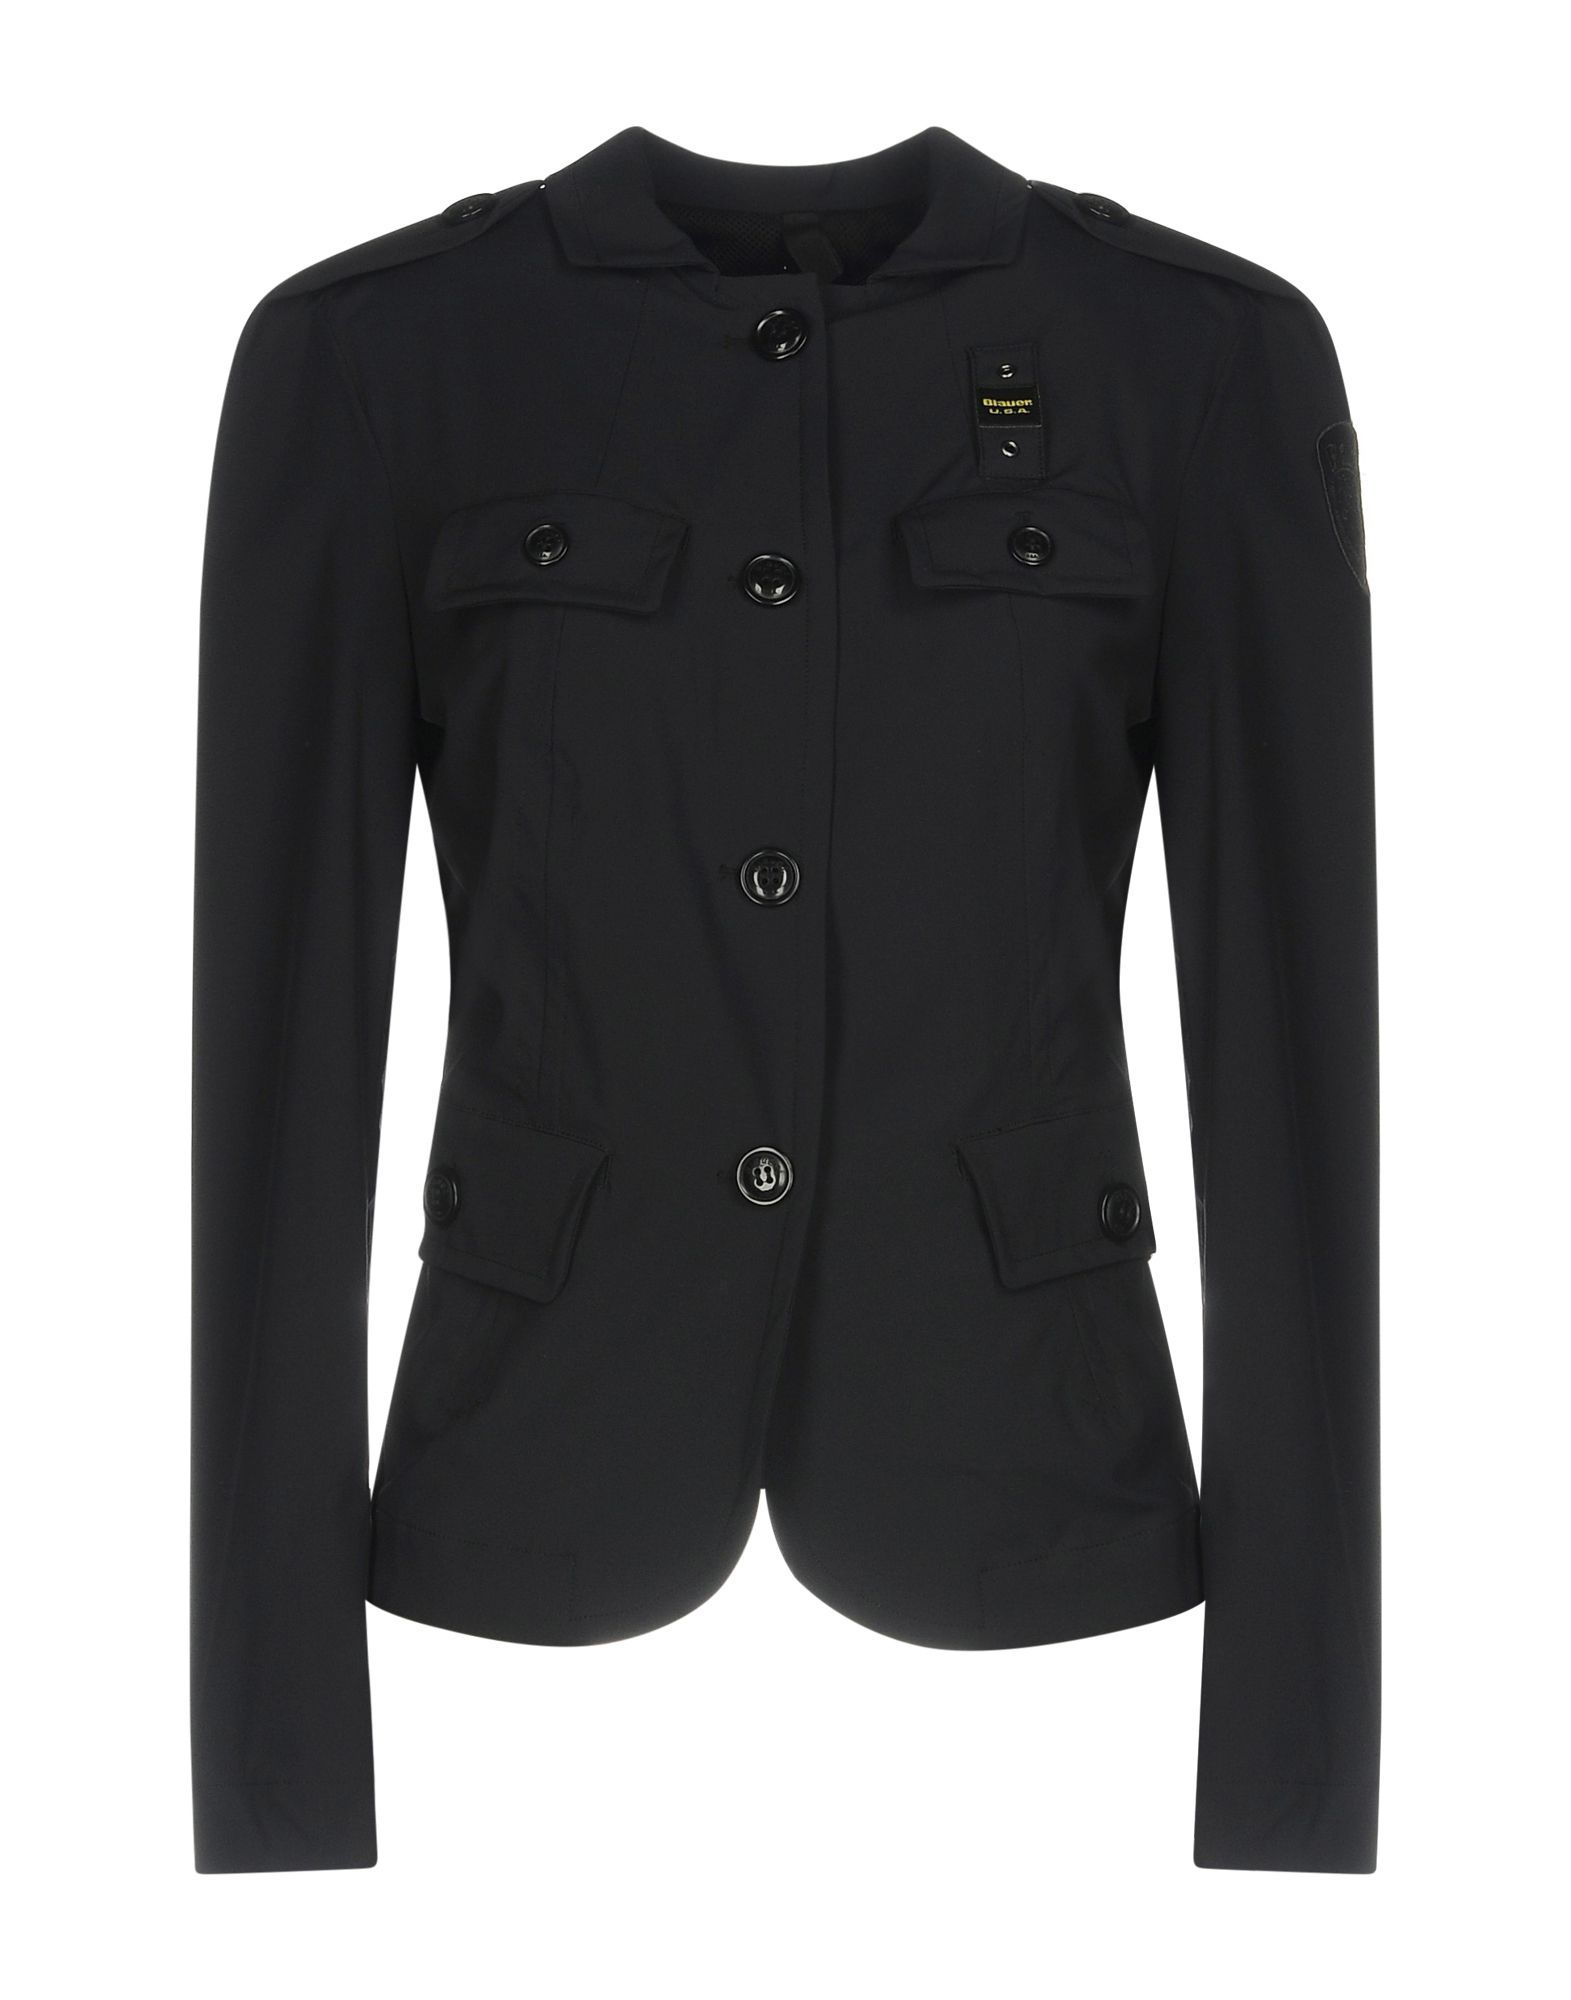 SUITS AND JACKETS Blauer Black Woman Polyamid